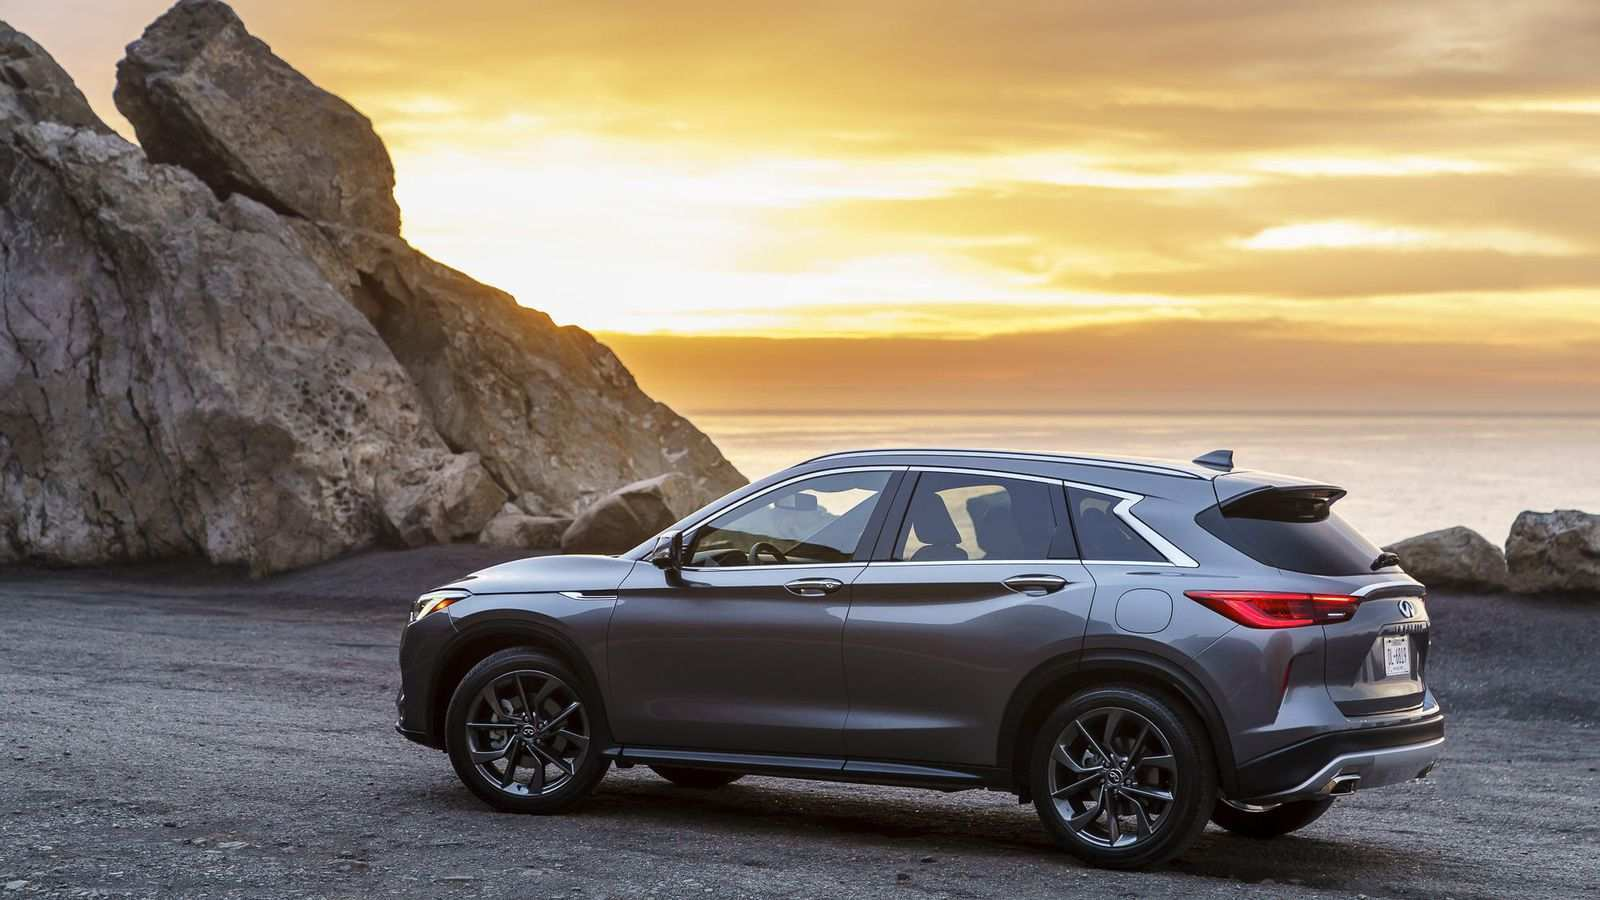 27 New 2019 Infiniti Qx50 Horsepower Specs for 2019 Infiniti Qx50 Horsepower